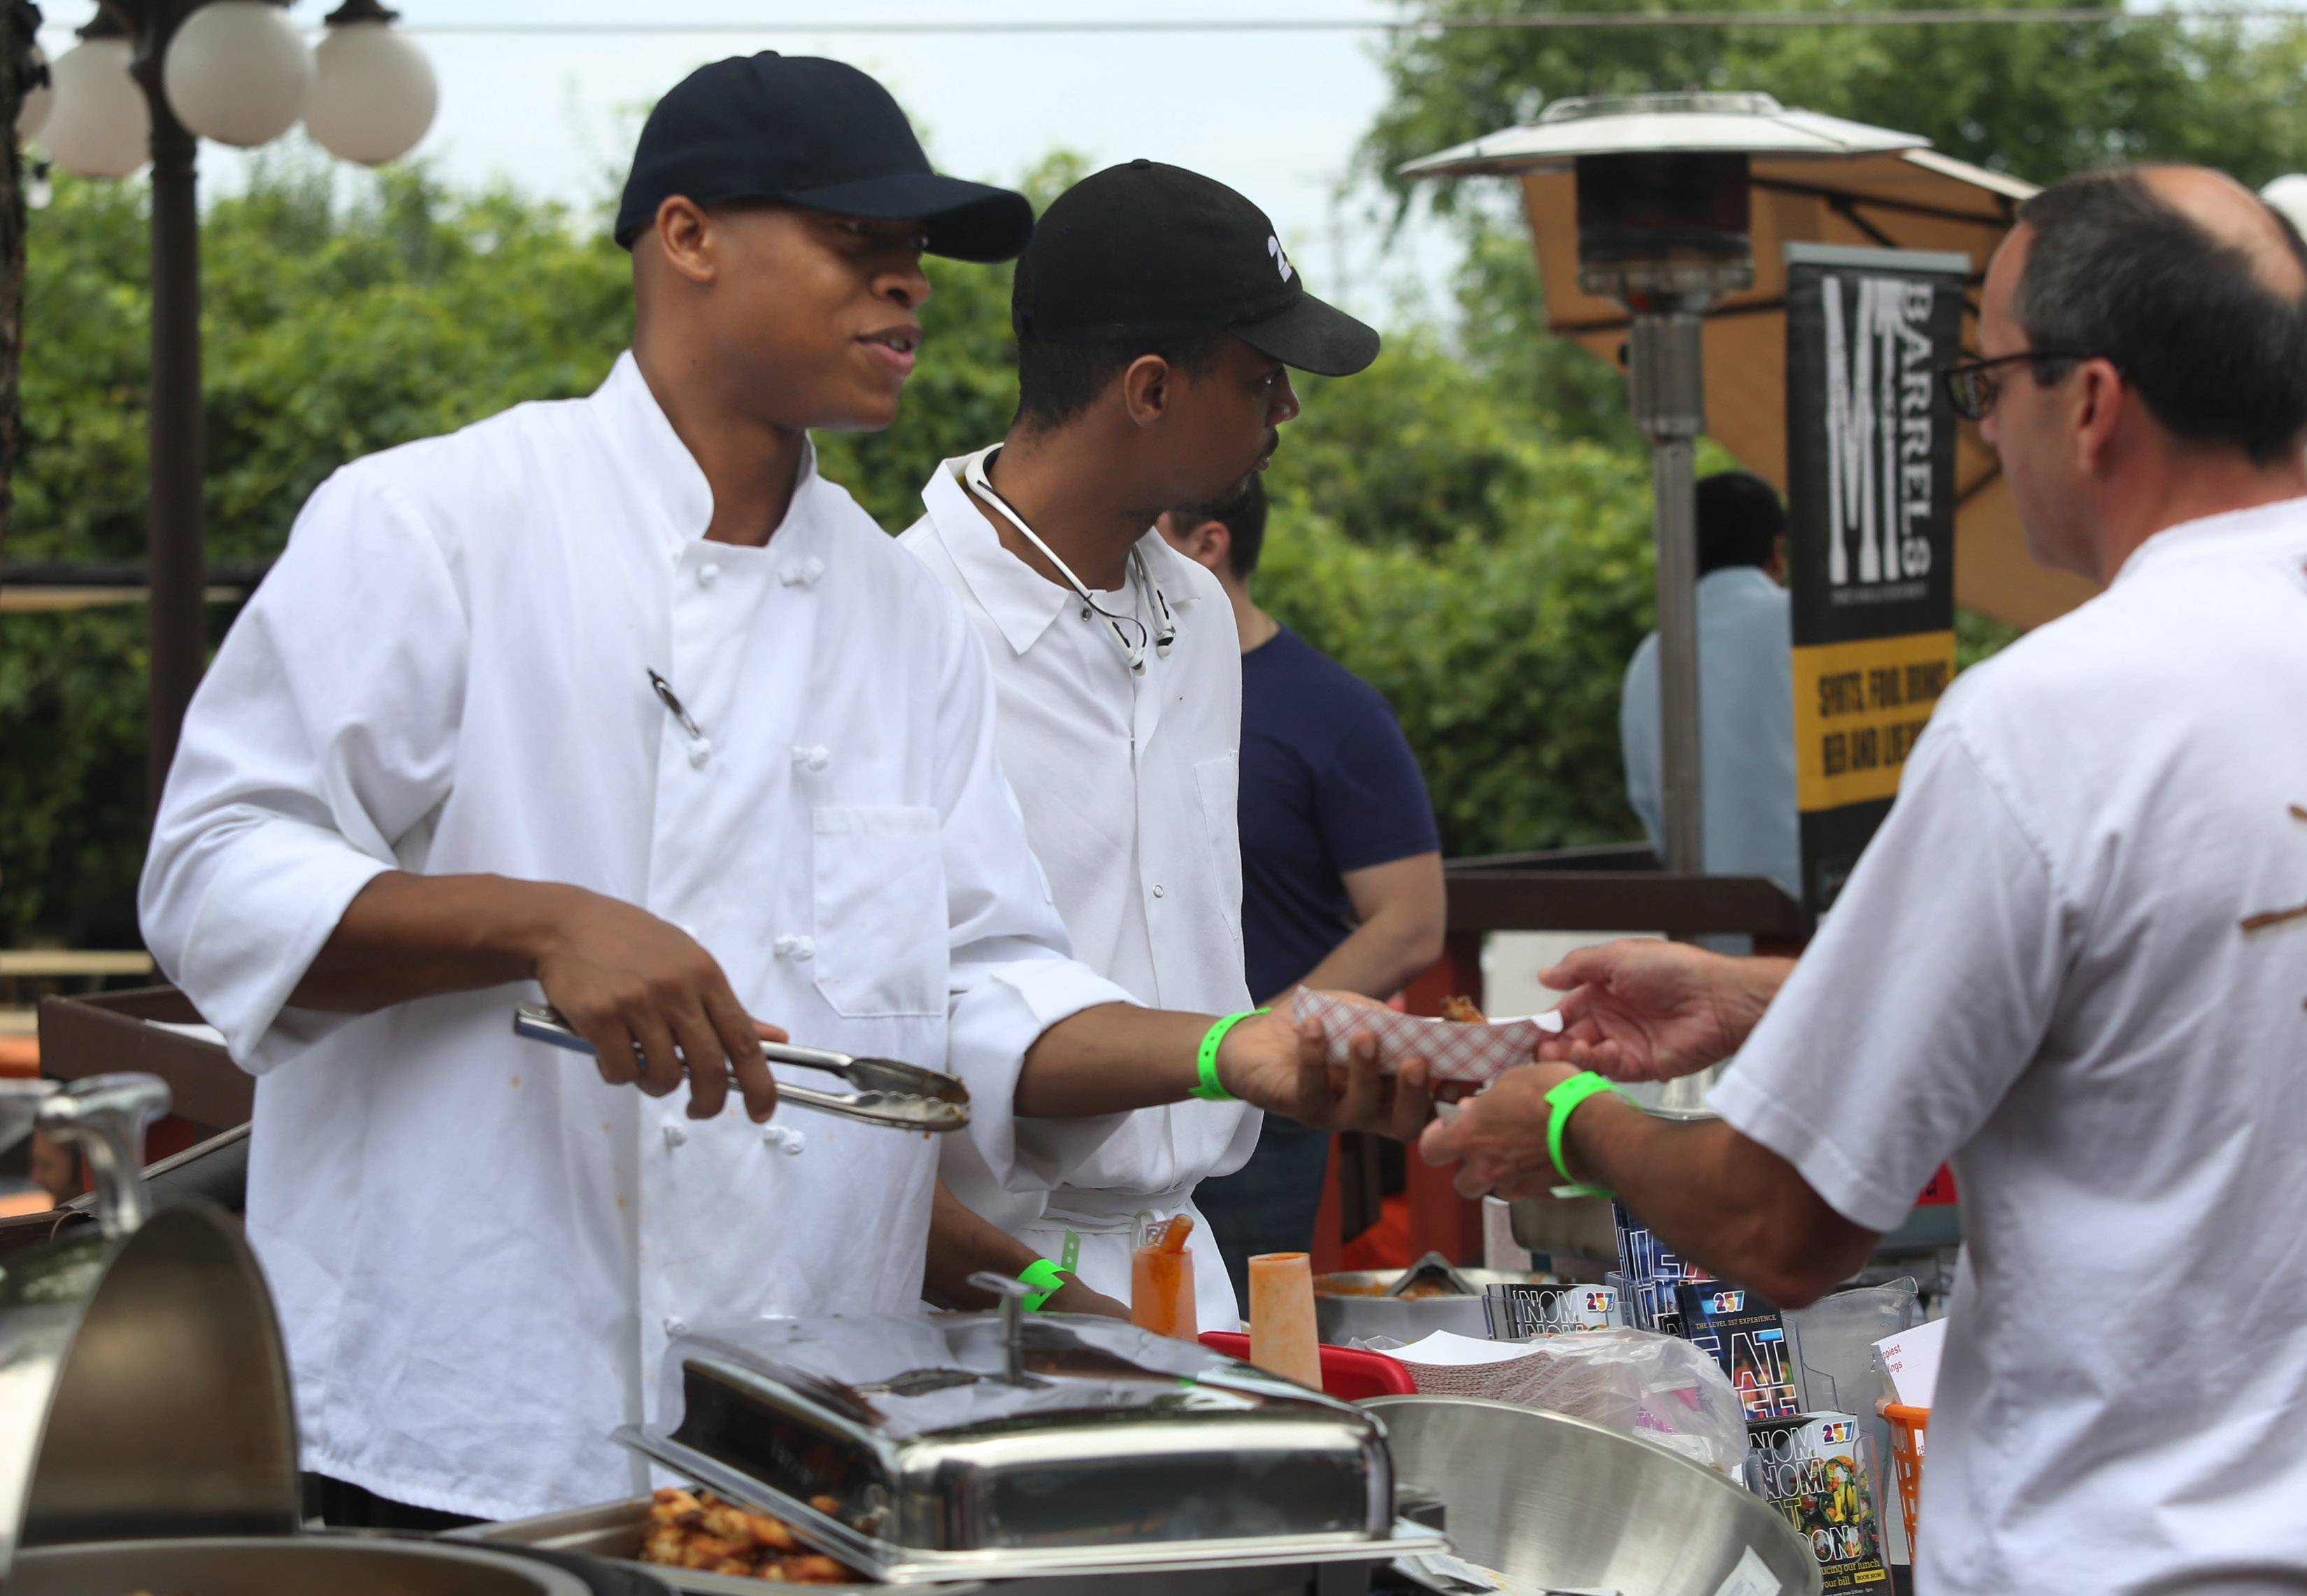 Banquet chef Arnold Ivey, left, and cook Kirk Wilborn of Level 257 serve wings to customers during the Woodfield Area Children's Organization Wingfest and Bags Tournament Sunday at Drink in Schaumburg.